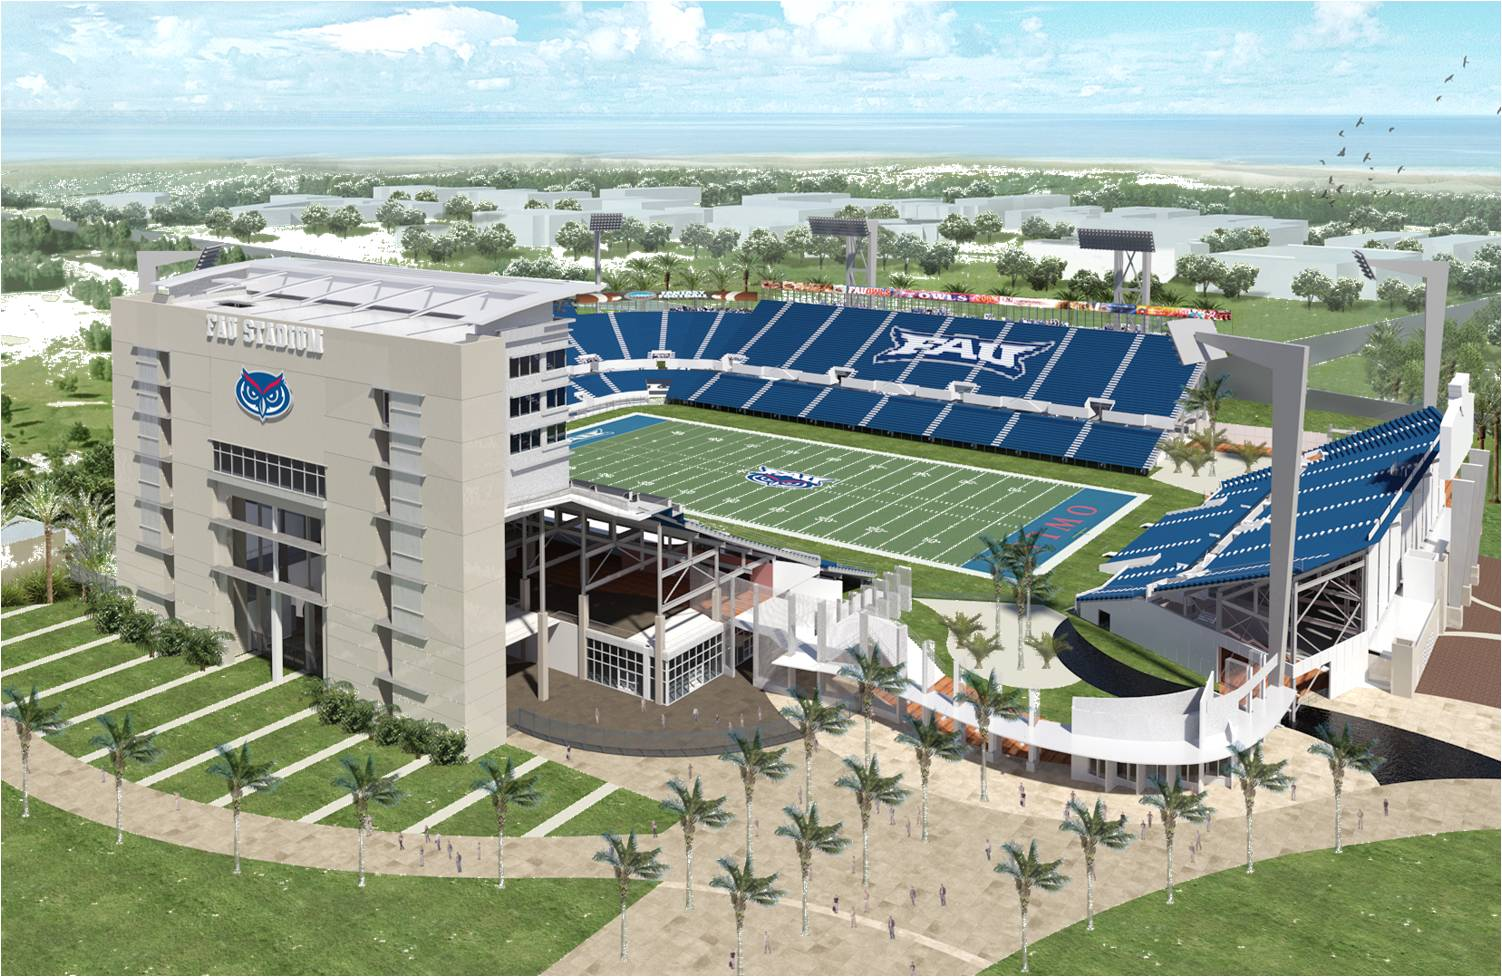 New Fau Football Era Begins With Groundbreaking For Onsite